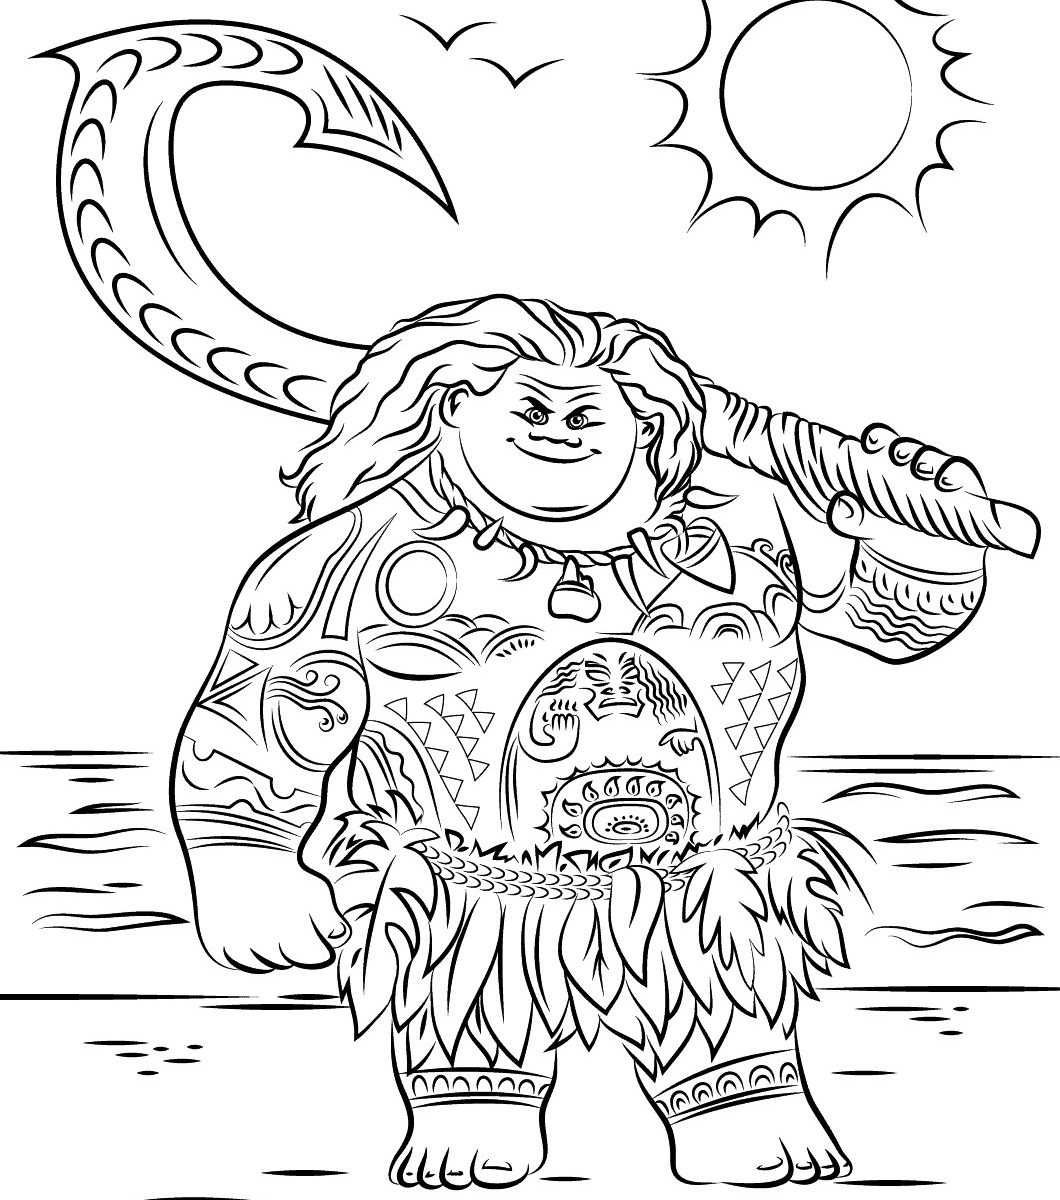 Moana color pages magnificent disney moana coloring pages free